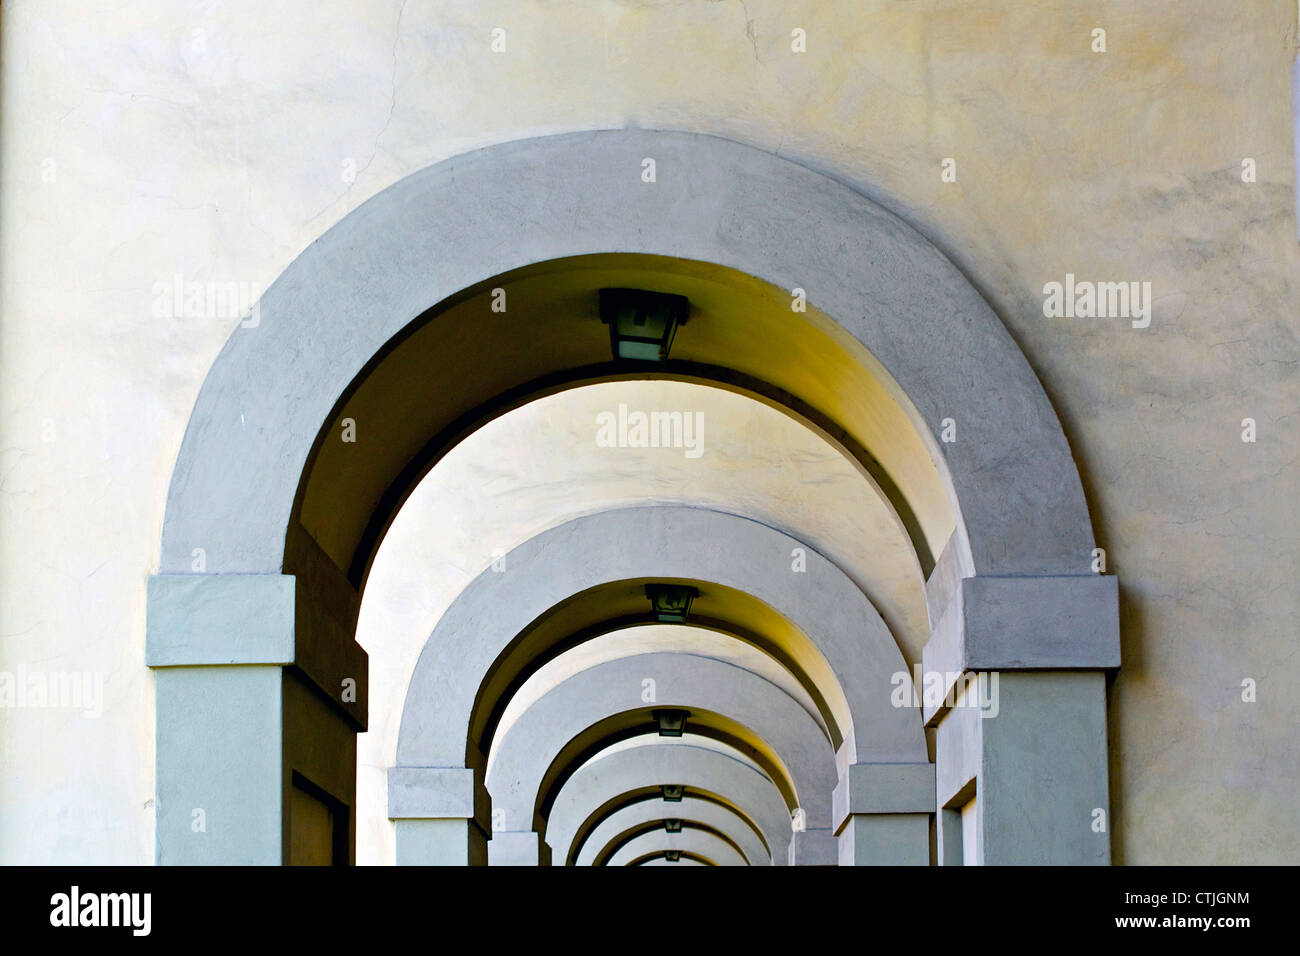 Series of concrete arches in Italy Florance - Stock Image